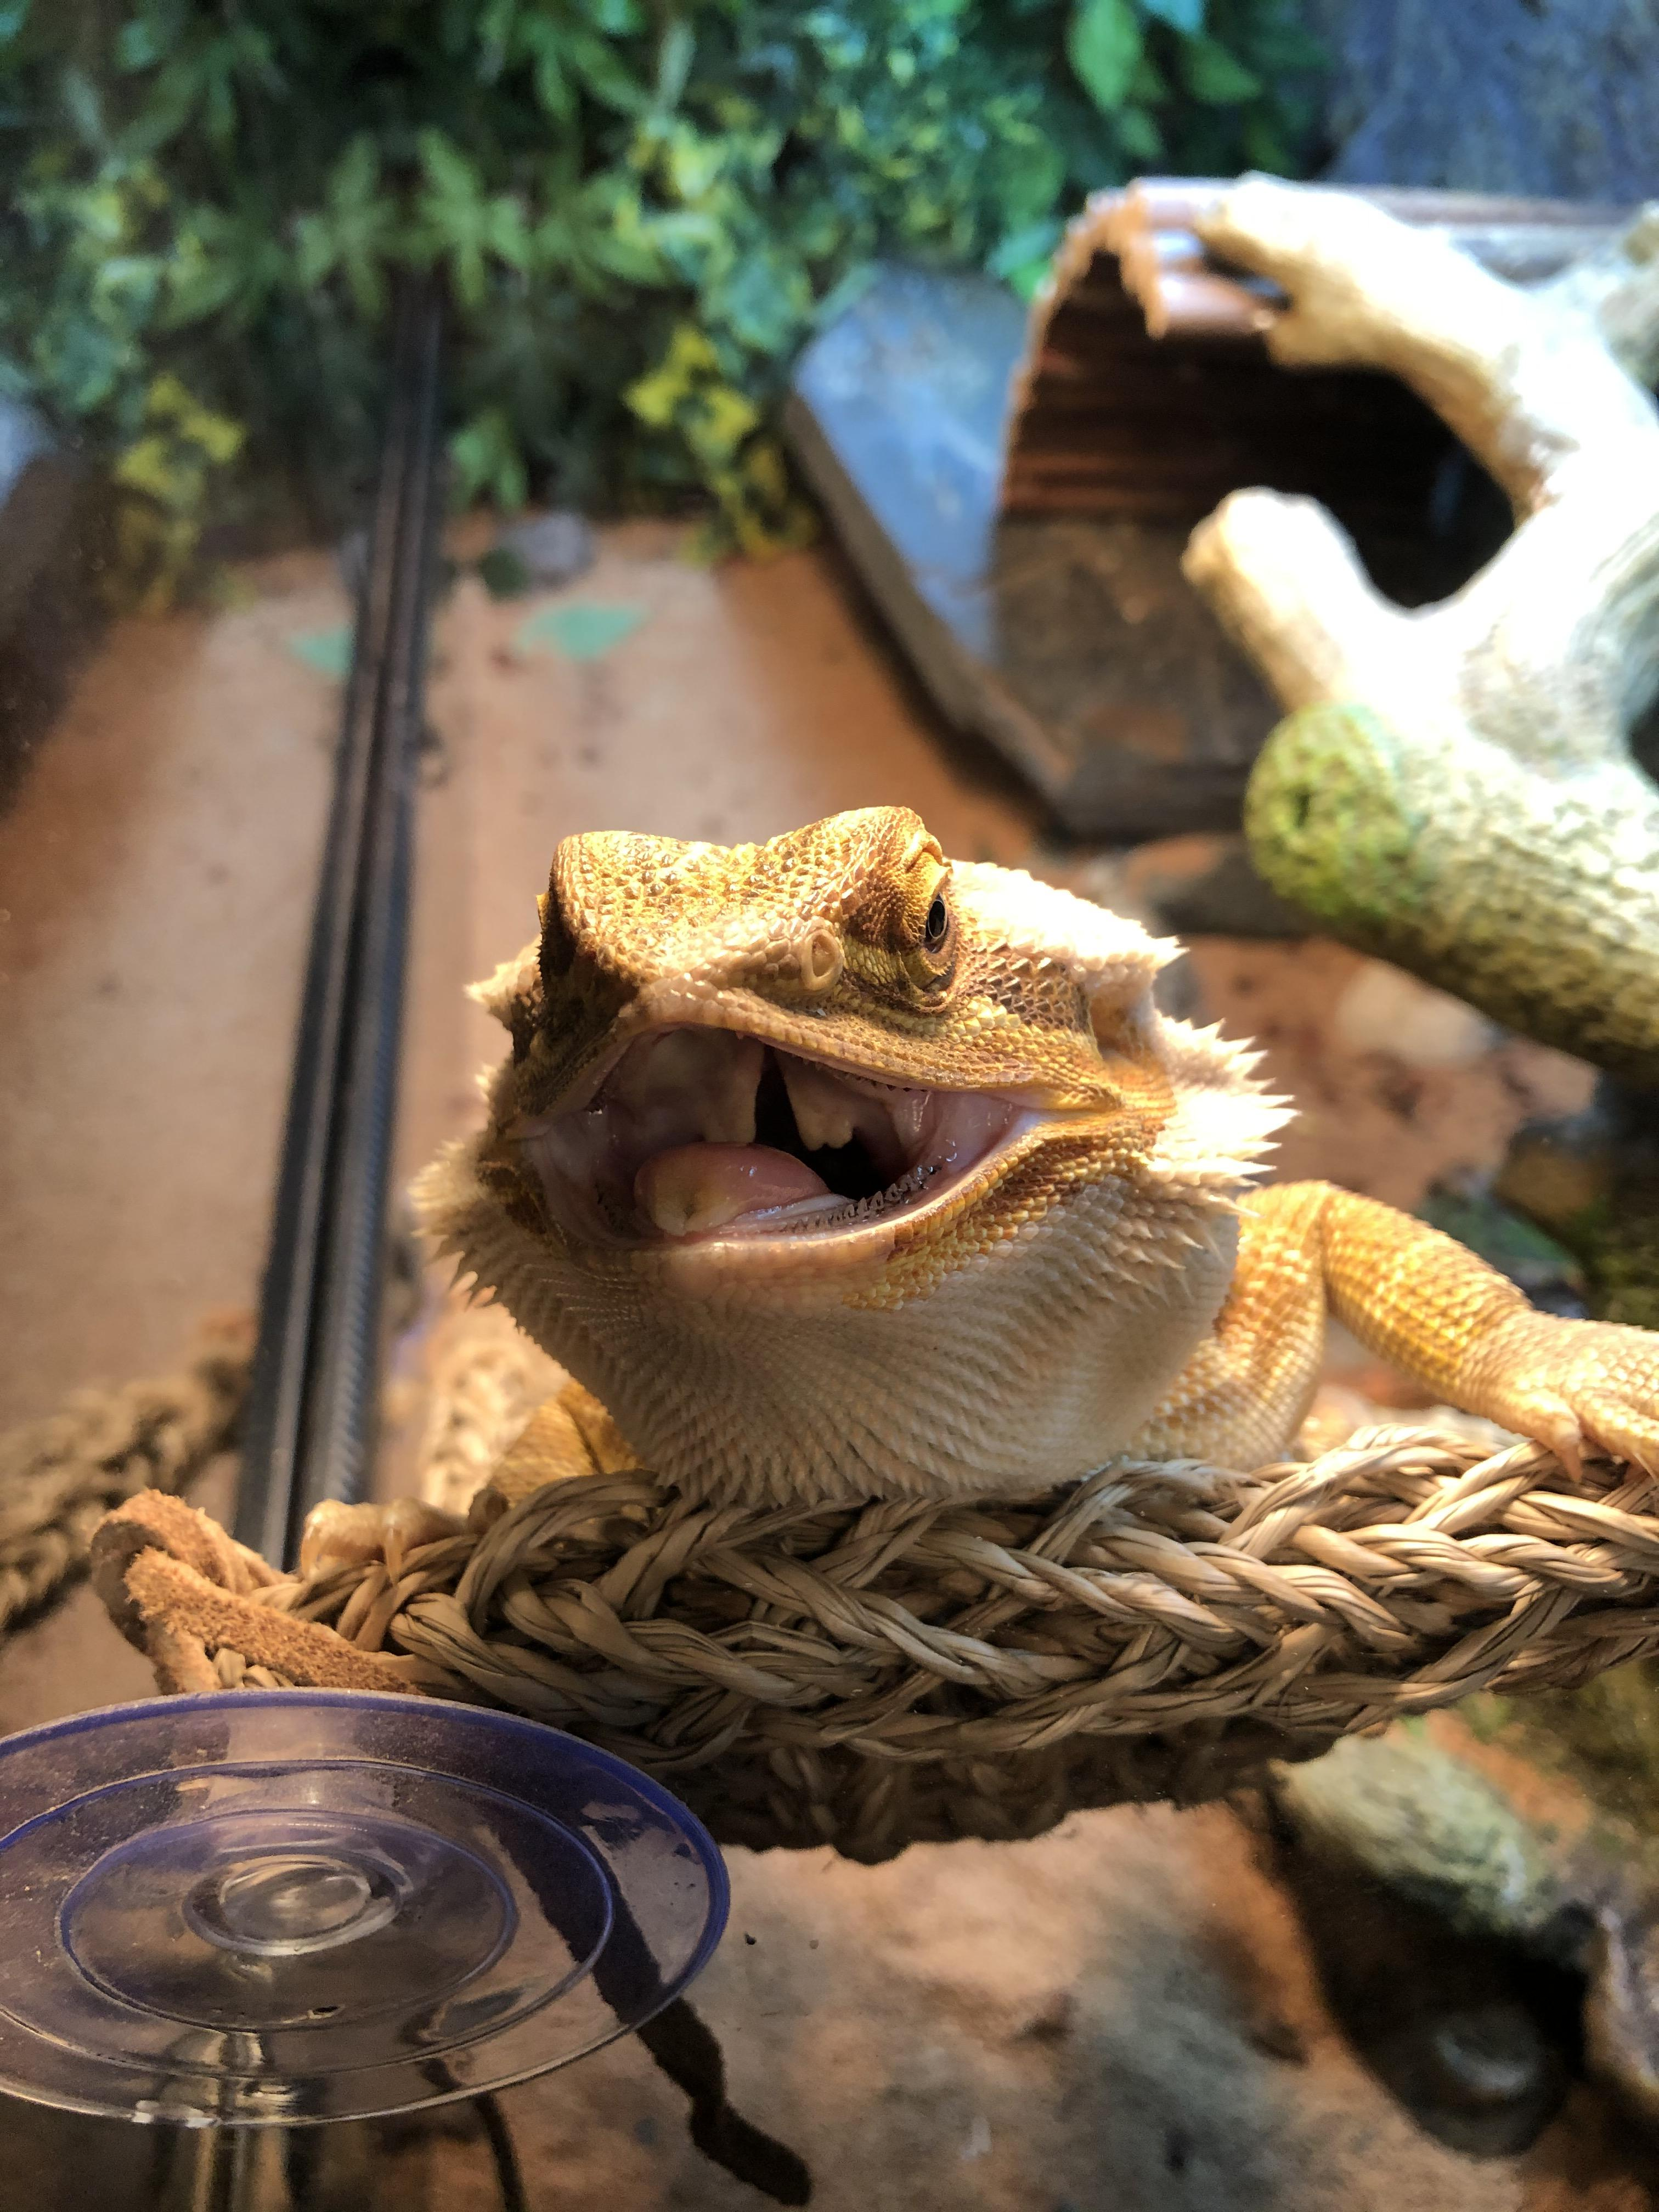 Look At That Beautiful Smile : beautiful, smile, Beautiful, Smile!!, About, Cleaning, Their, Dragons, Teeth?, BeardedDragons